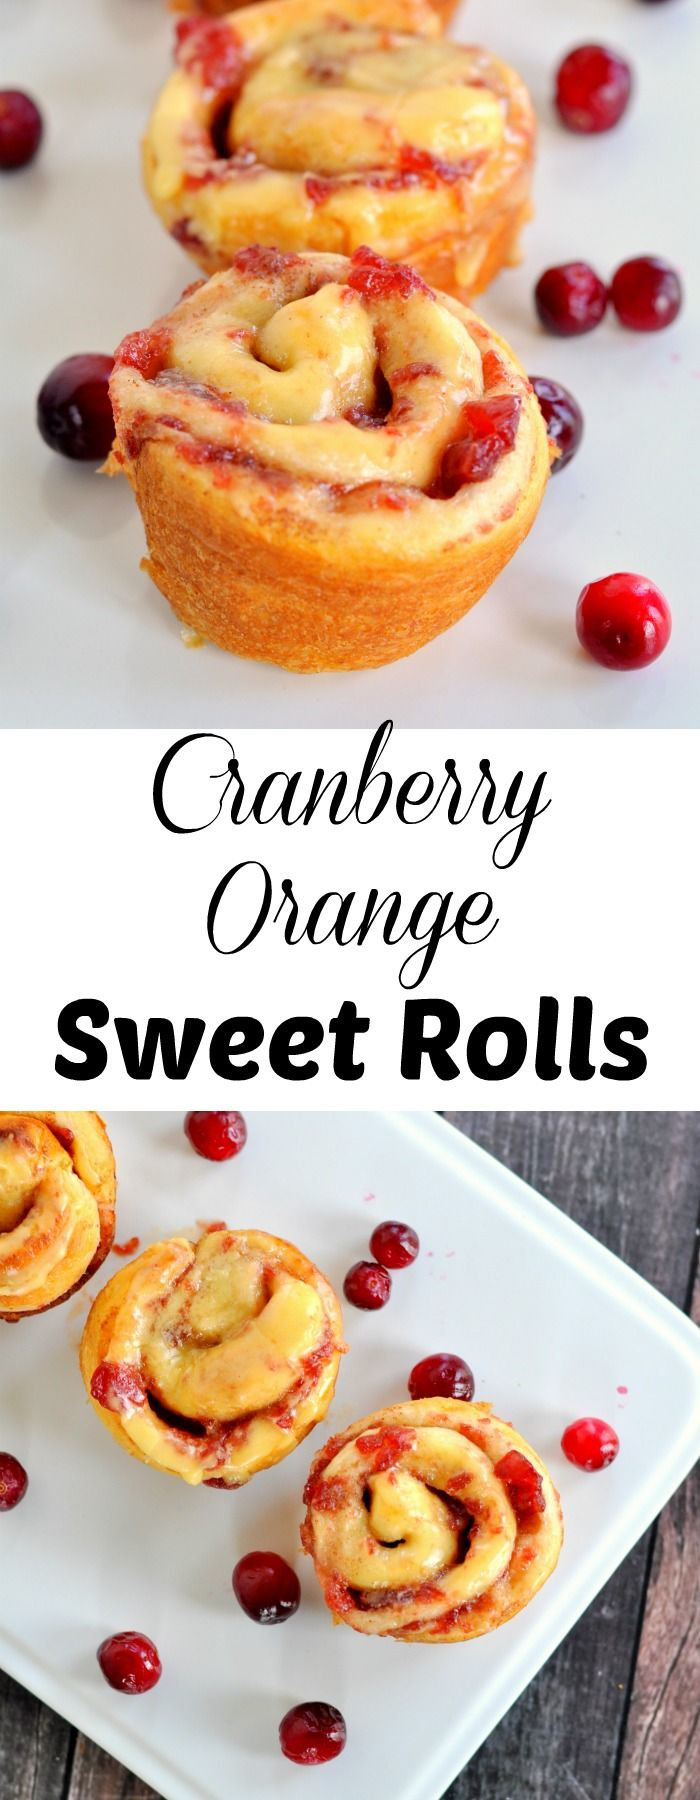 Cranberry orange sweet rolls are the perfect breakfast treat. #warmesttraditions [AD]